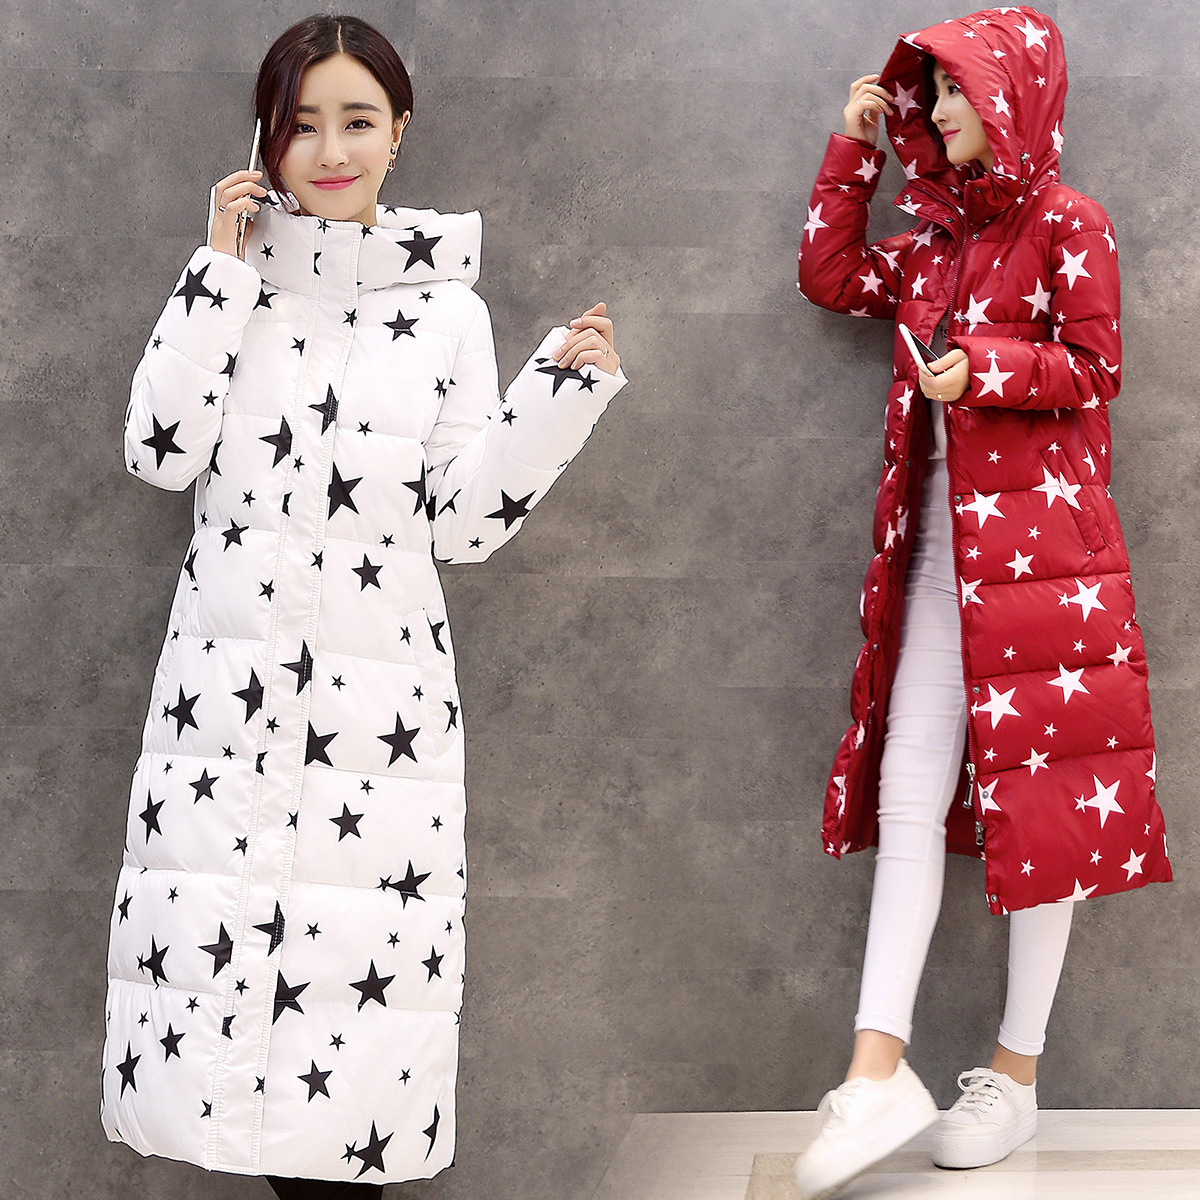 New Women Winter Jacket Cotton Padded Thick Stars Print Female Hooded Coat Parkas Warm Winter Long Womens Jackets and Coats korean winter jacket women large size long coat female snow wear cotton parkas hooded thick warm coats and jackets 7 colors